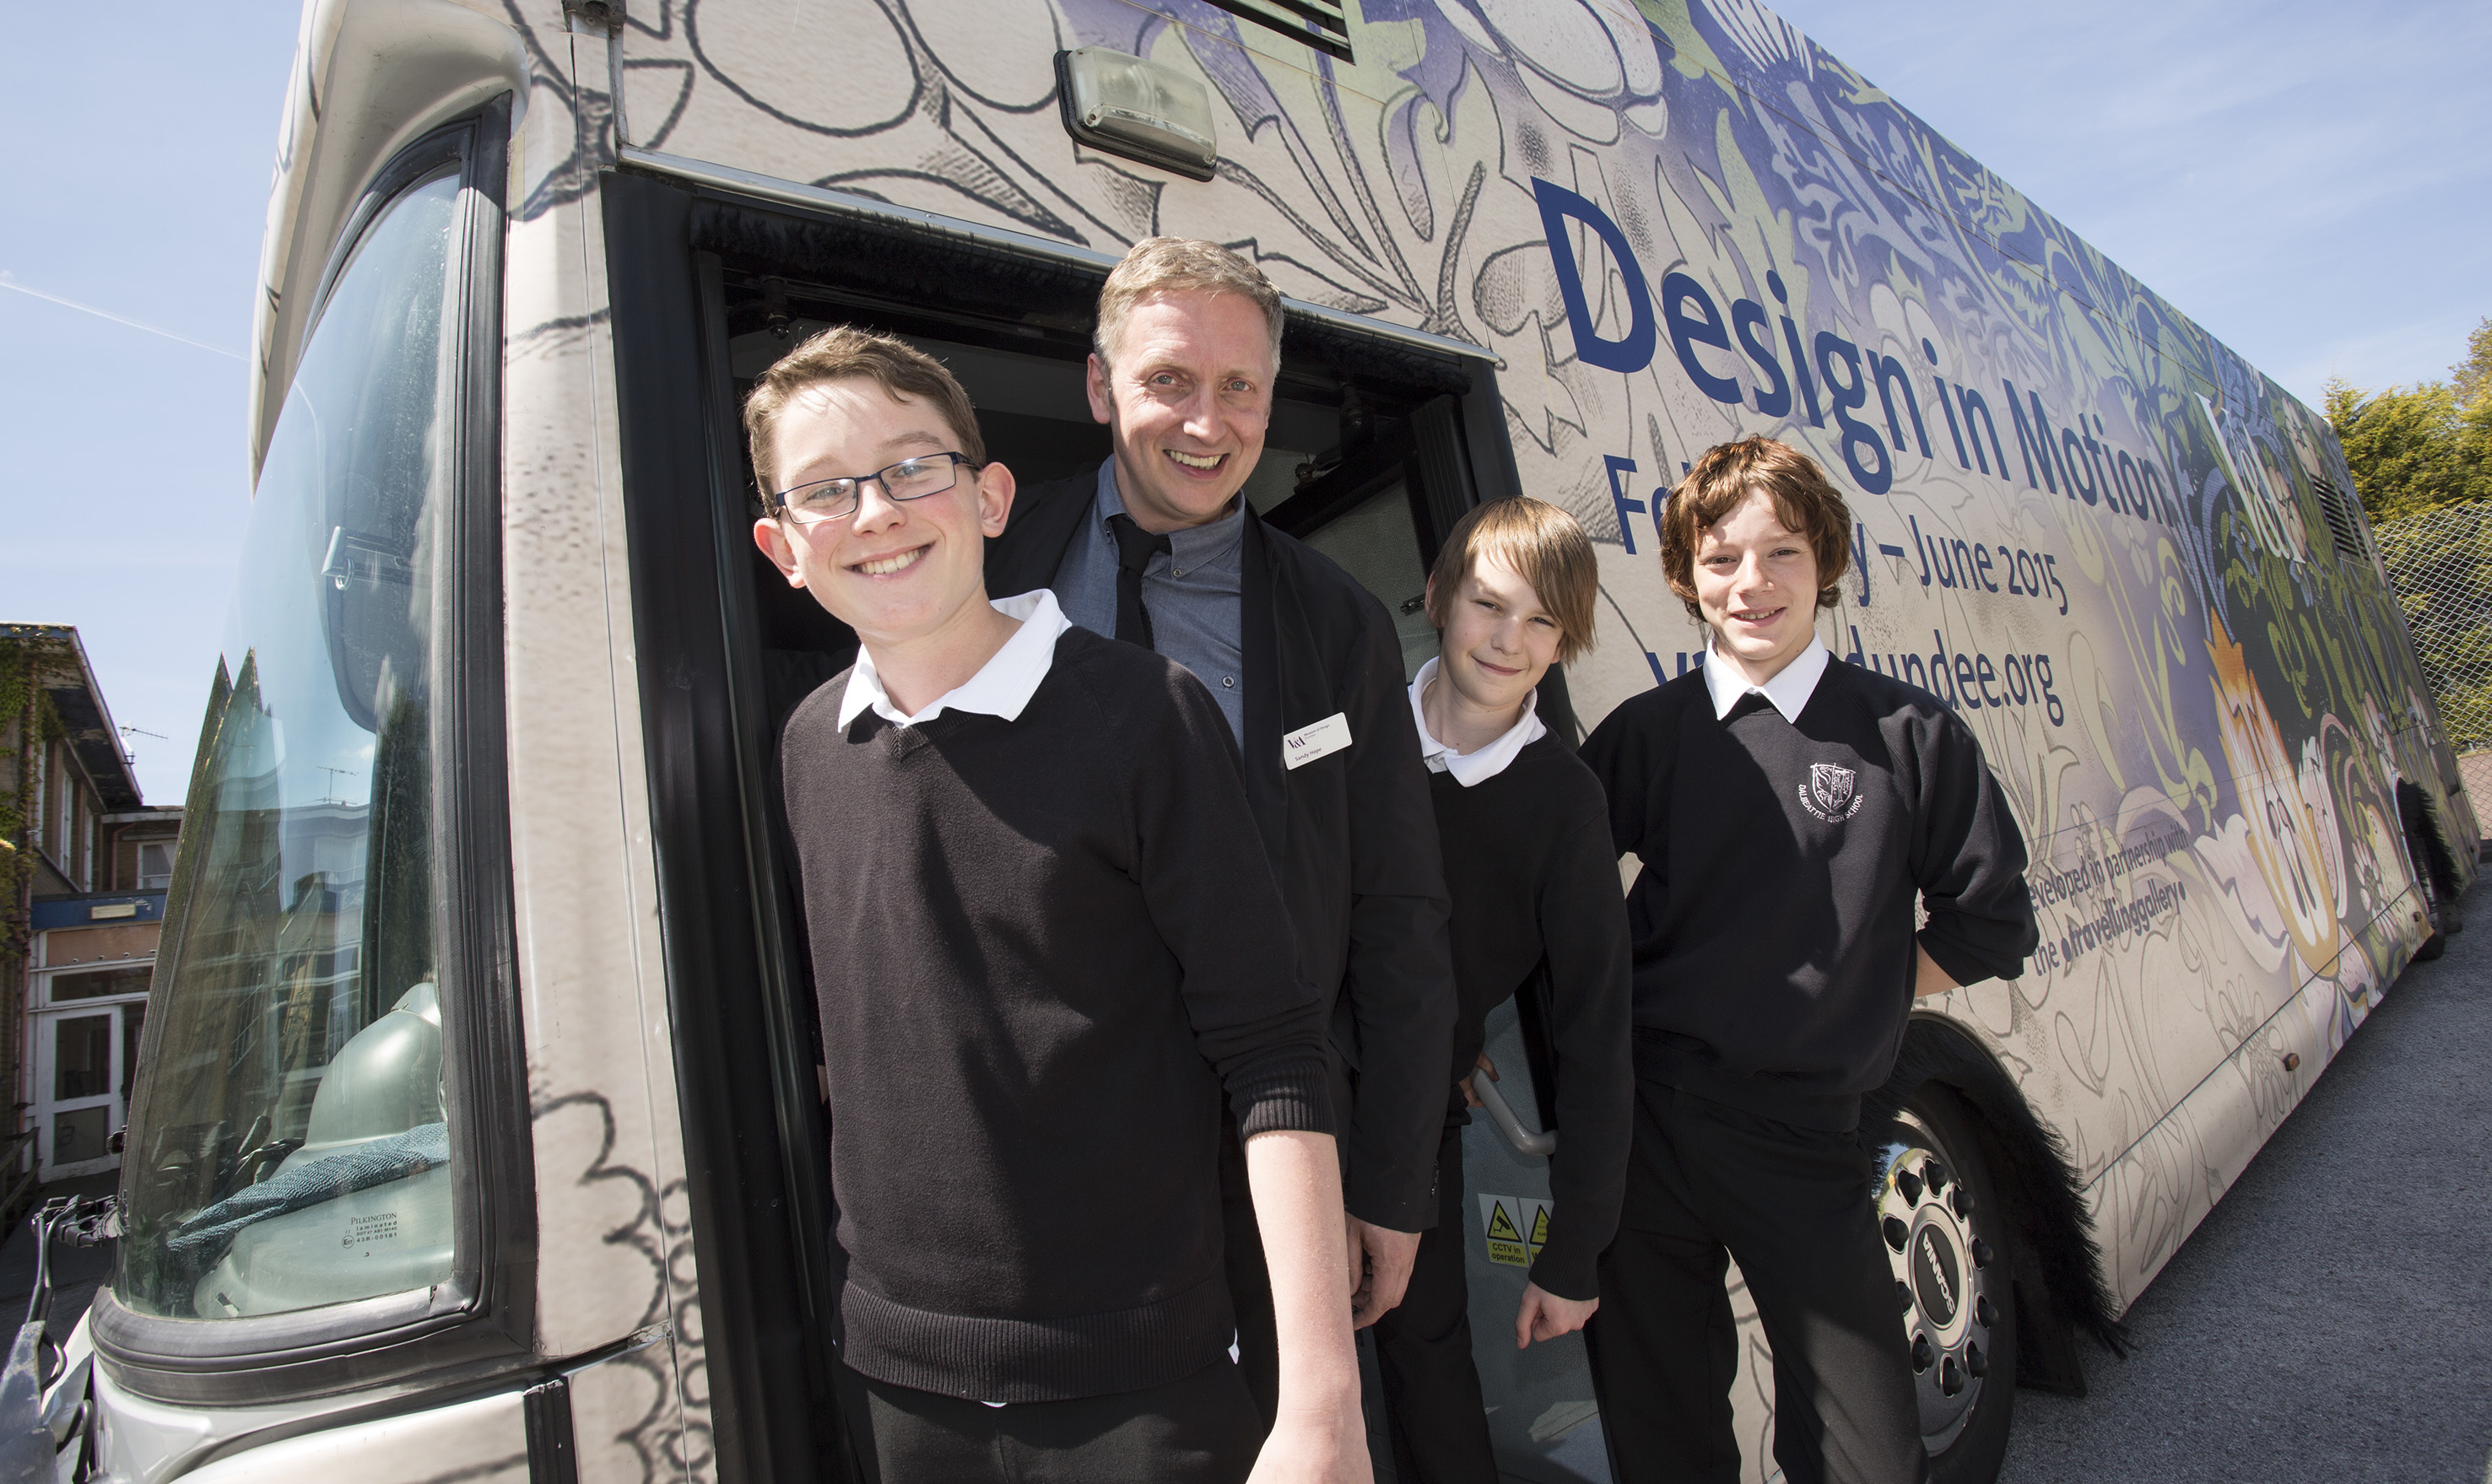 Sandy Hope with pupils from Dalbeattie High School on the Design in Motion gallery bus.